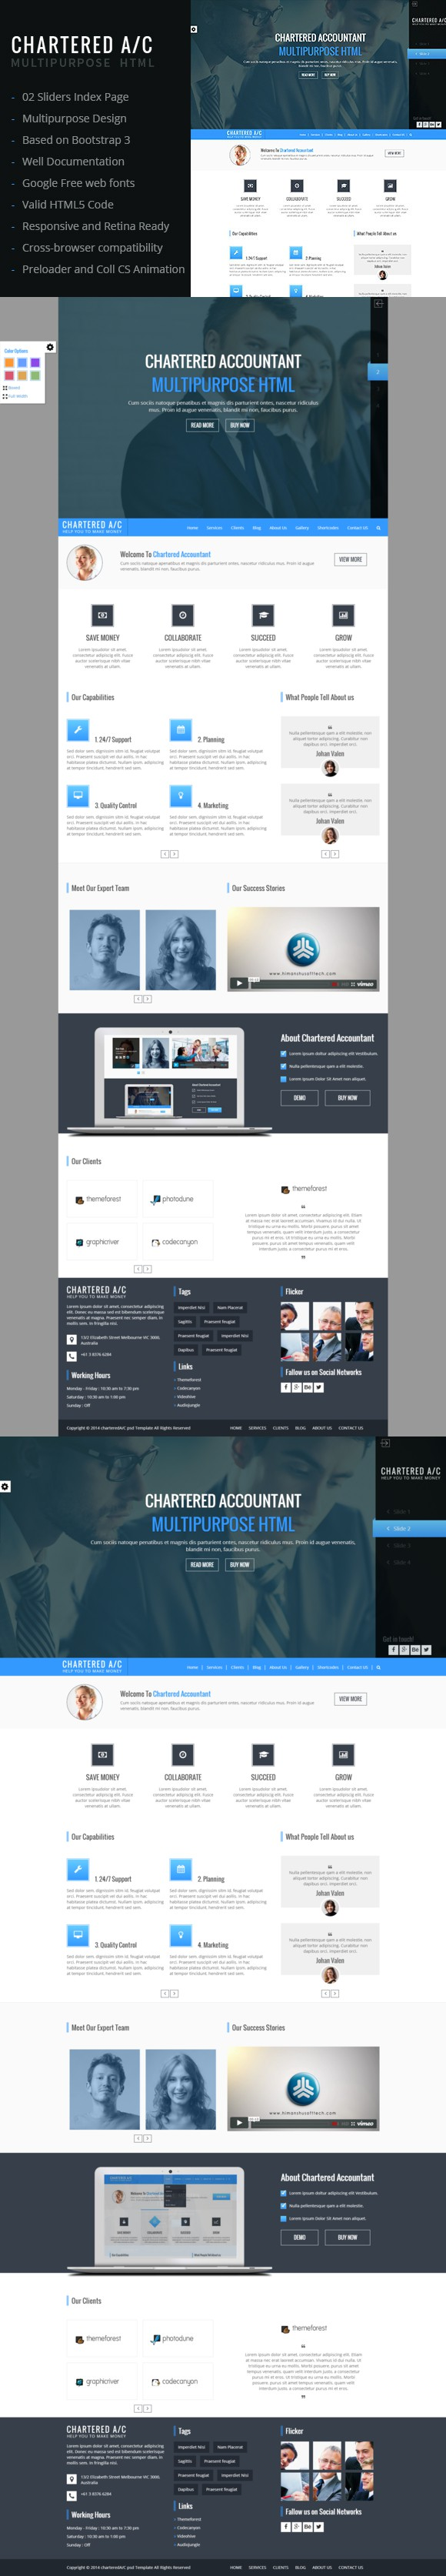 Chartered A/C Multipurpose HTML. Bootstrap Templates. $20.00 ...